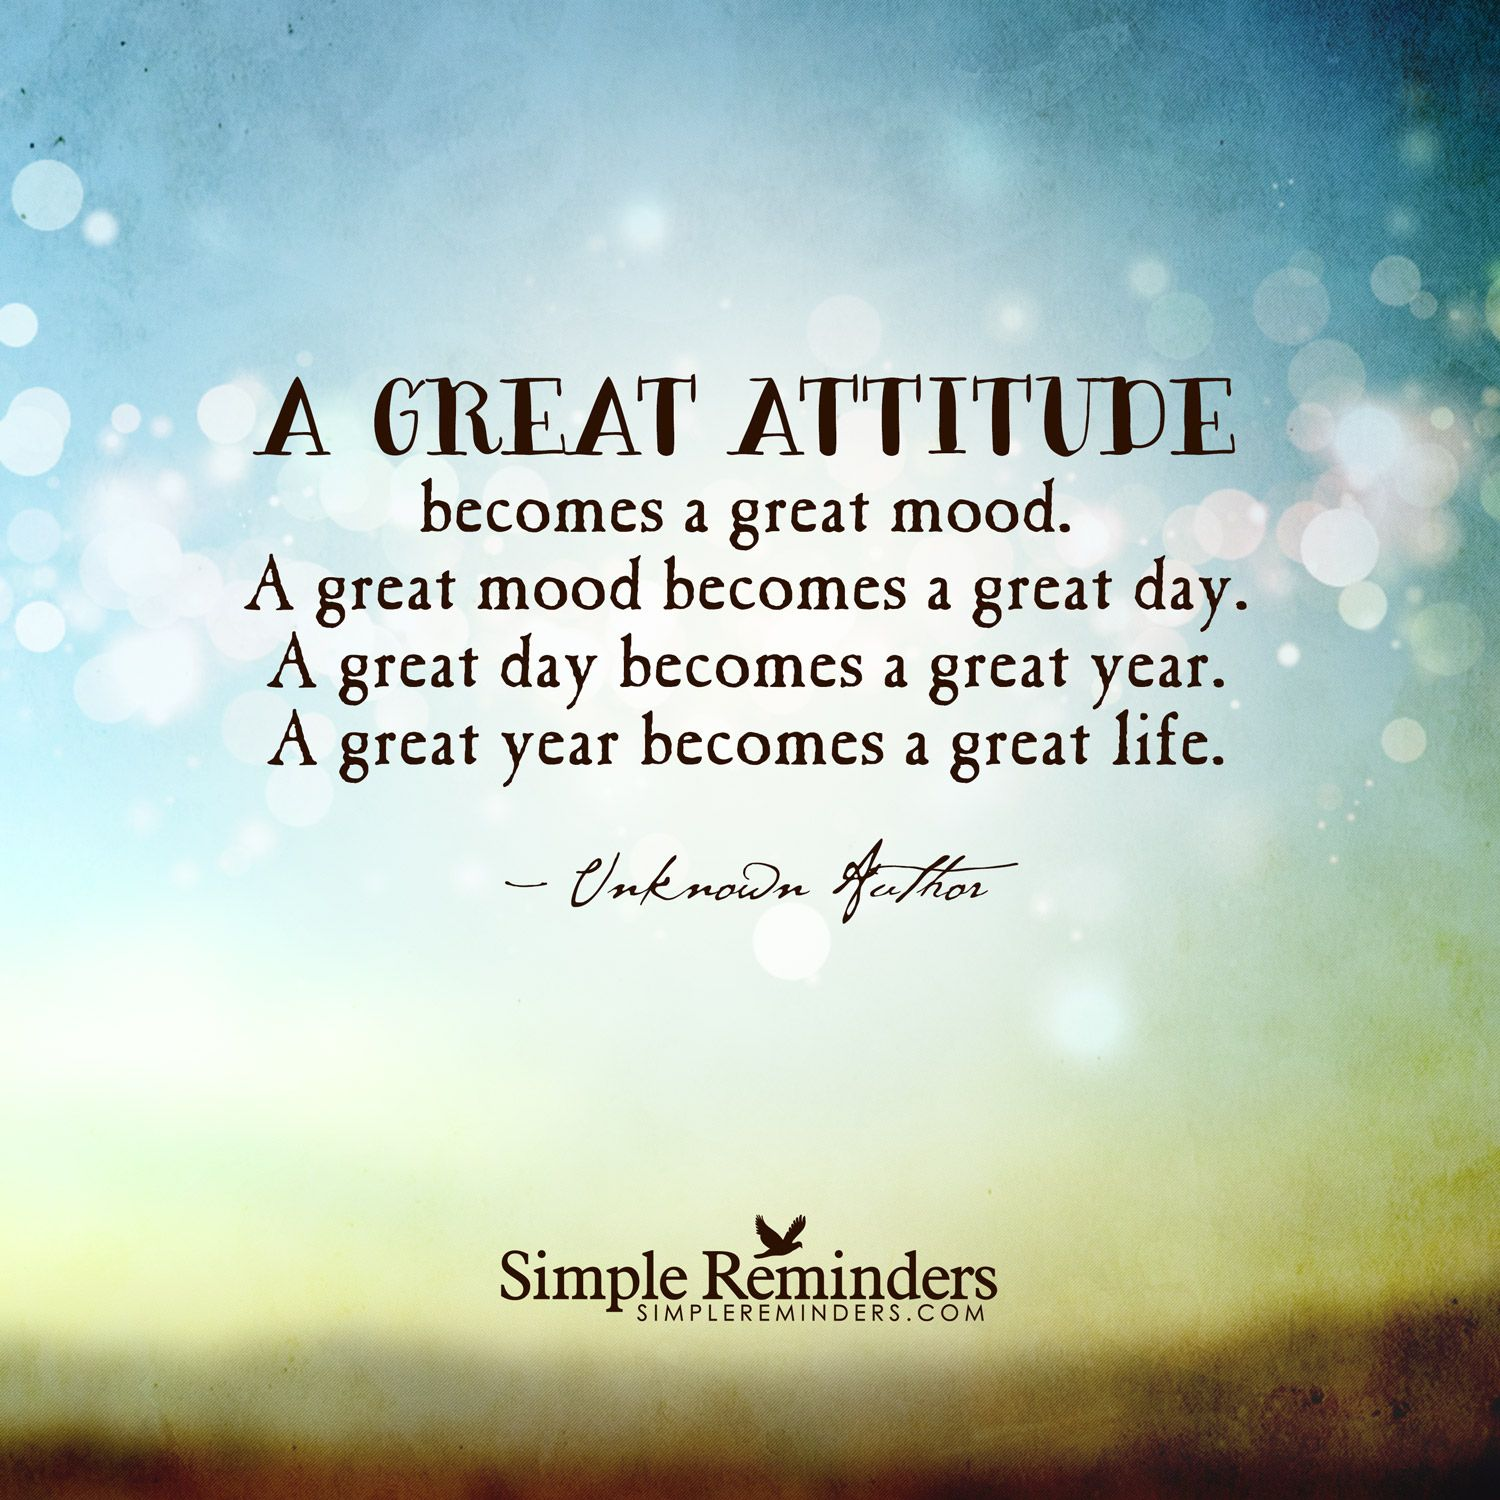 Life Quotes By Authors: A Great Attitude Creates A Great Life